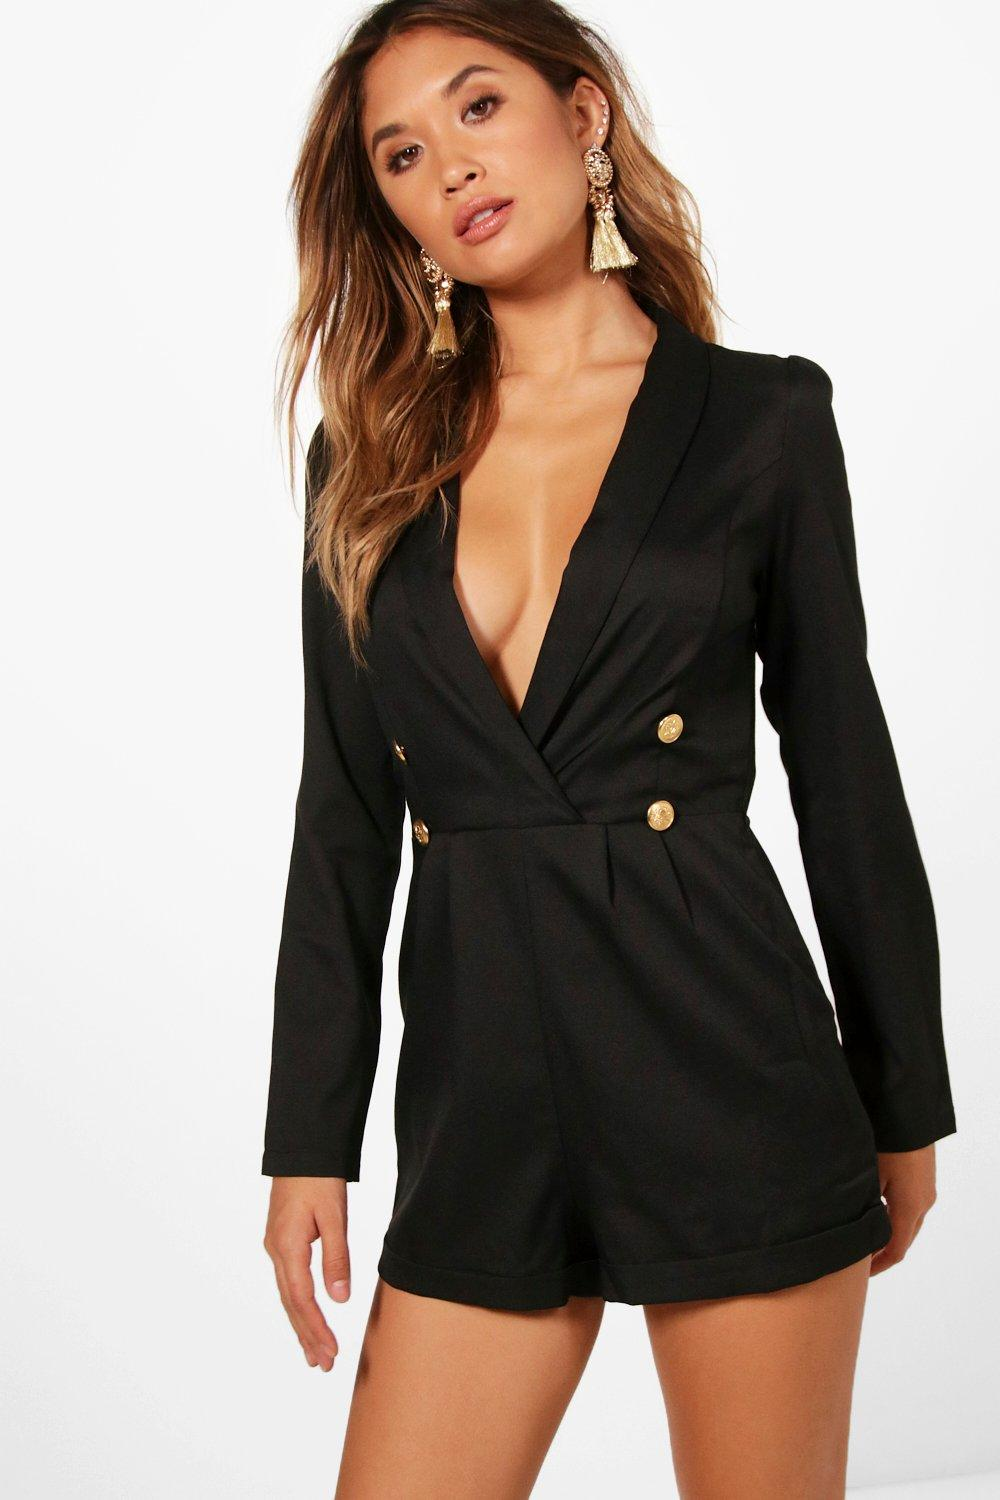 black Military Button Tuxedo Tuxedo black Military black Playsuit Playsuit Military Button Tuxedo Button Military Playsuit pg4AqW0px